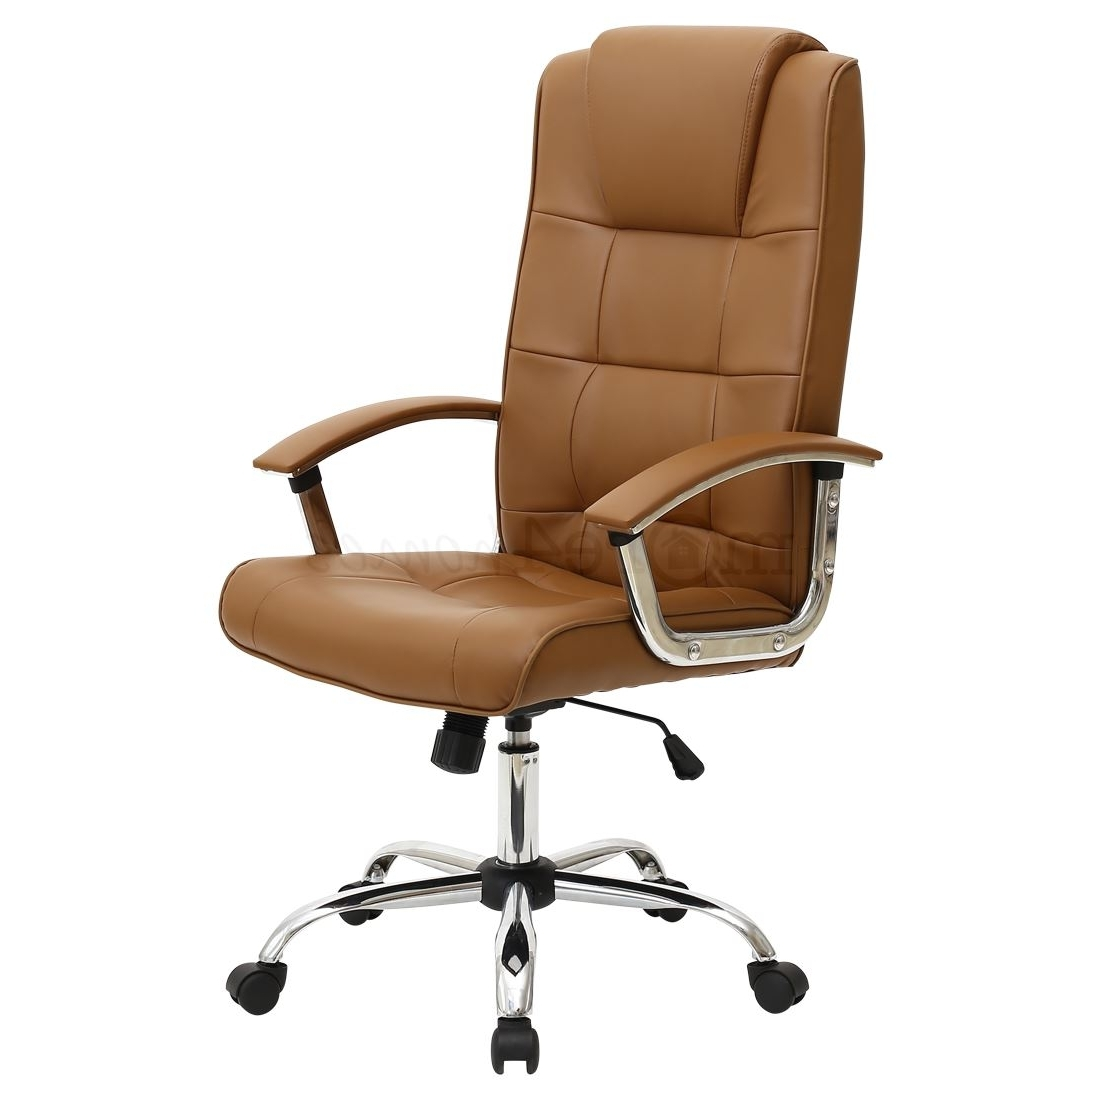 Lane Executive Office Chairs Pertaining To Famous Chair : Faux Leather Executive Office Chair Lane Executive Leather (View 5 of 20)